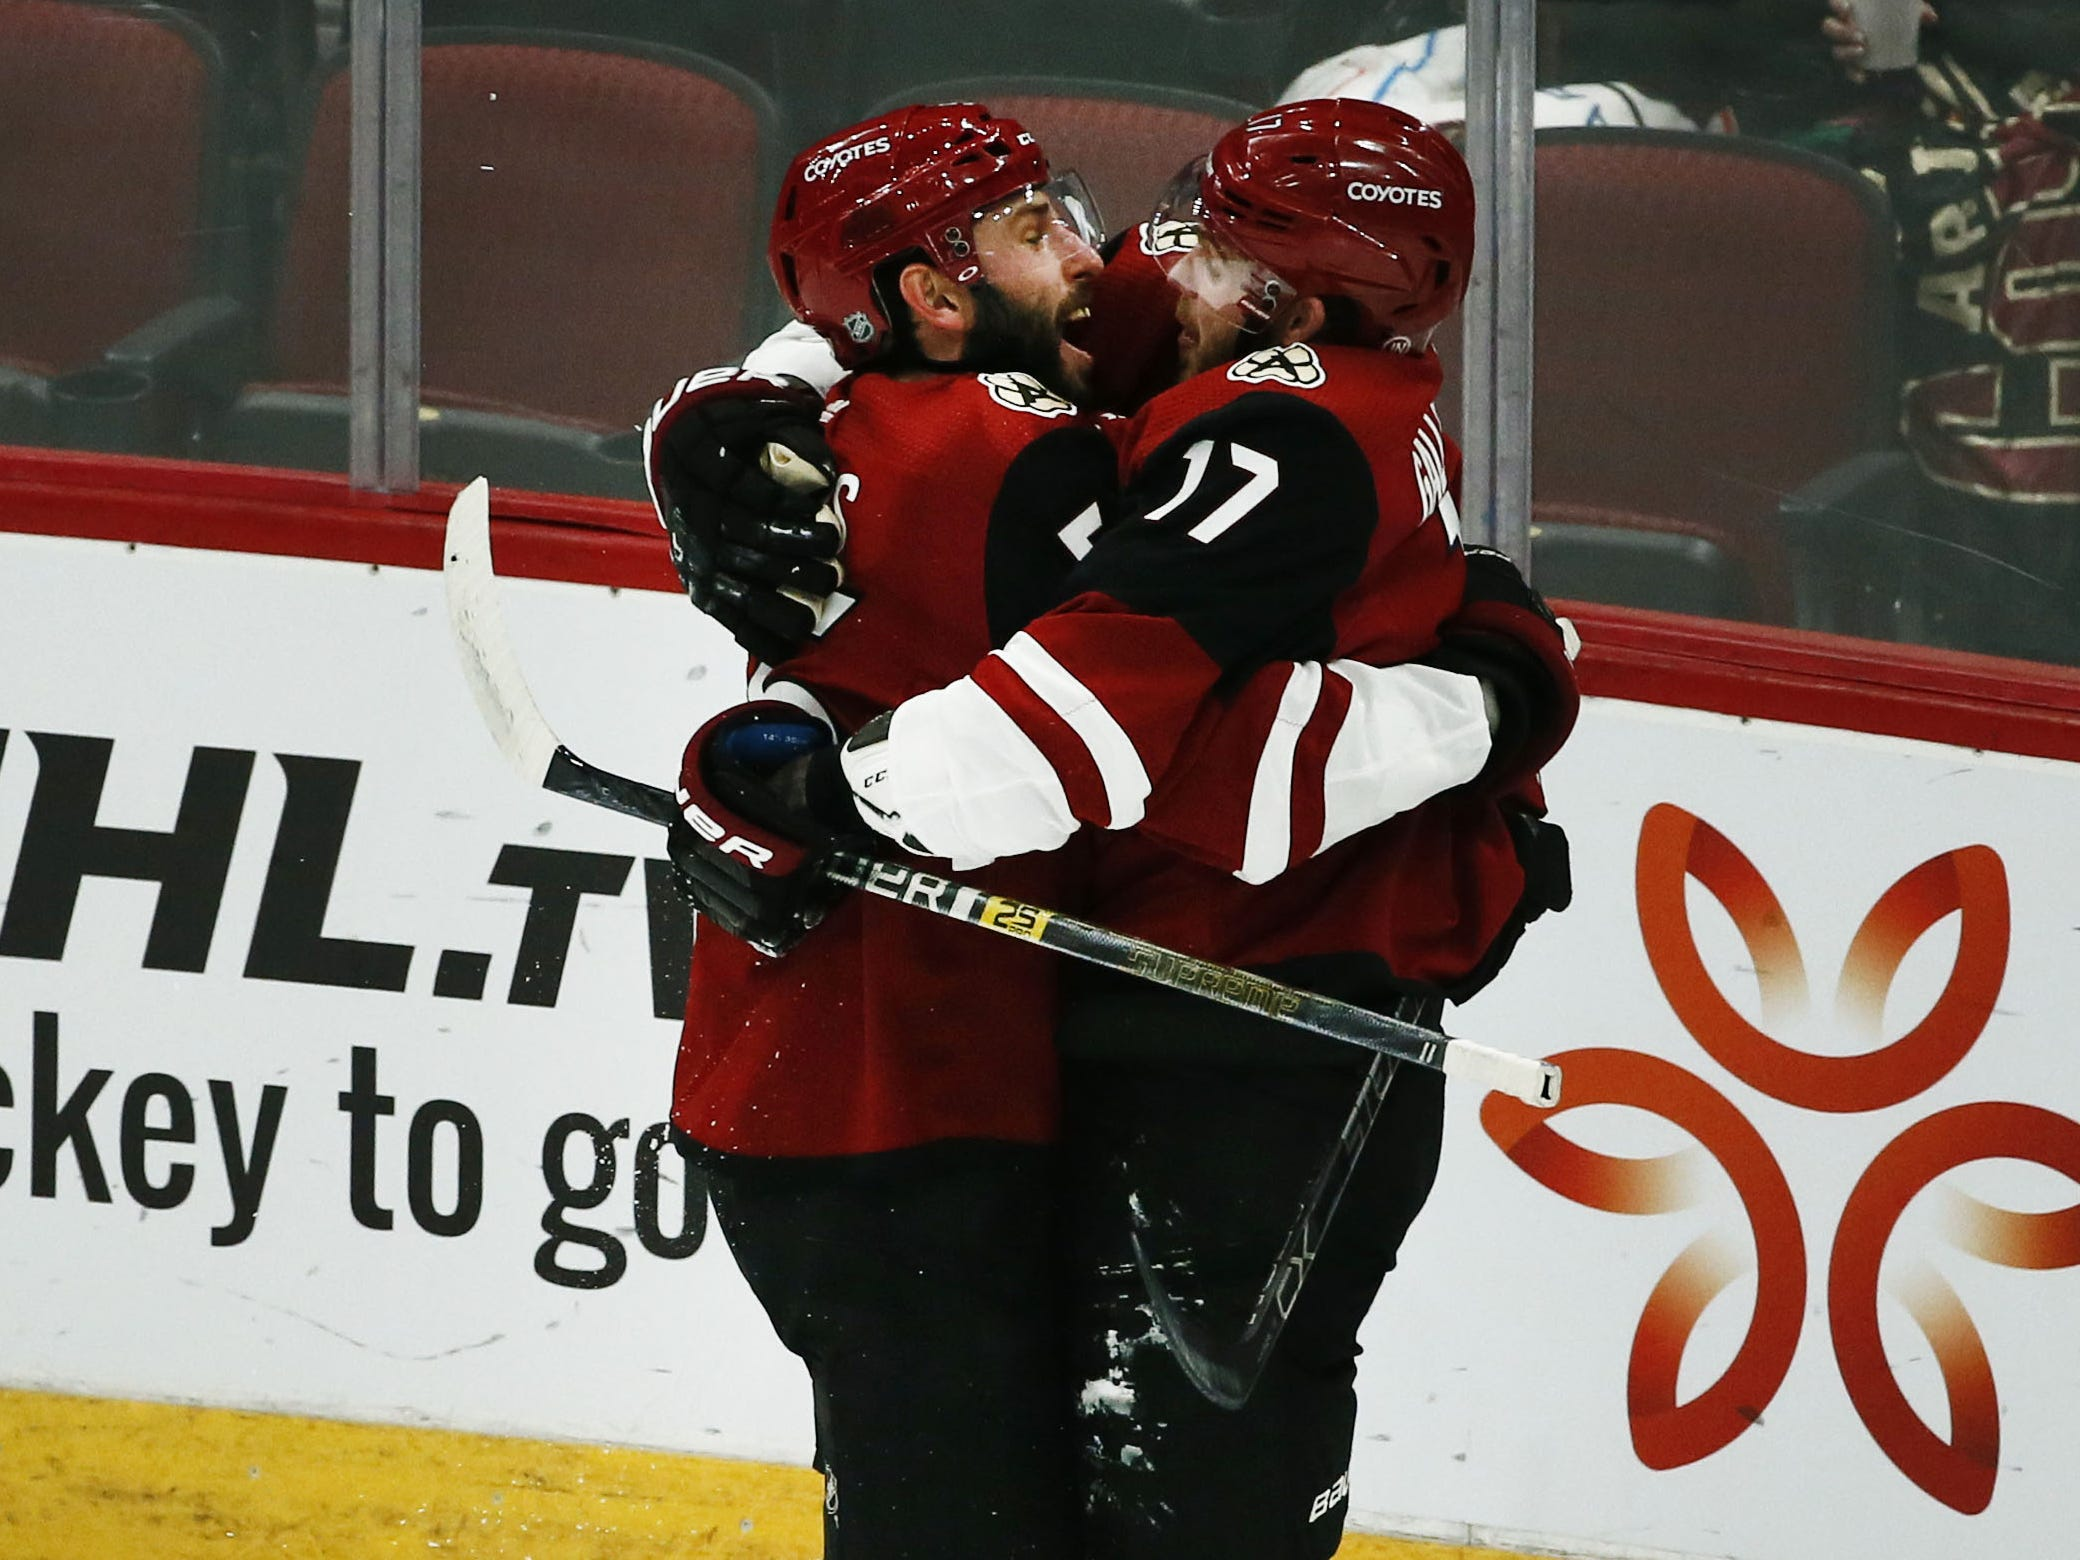 Arizona Coyotes Alex Galchenyuk (17) receives a hug from Jason Demers after scoring a goal against the Ottawa Senators in the first period on Oct. 30, 2018 at Gila River Arena.